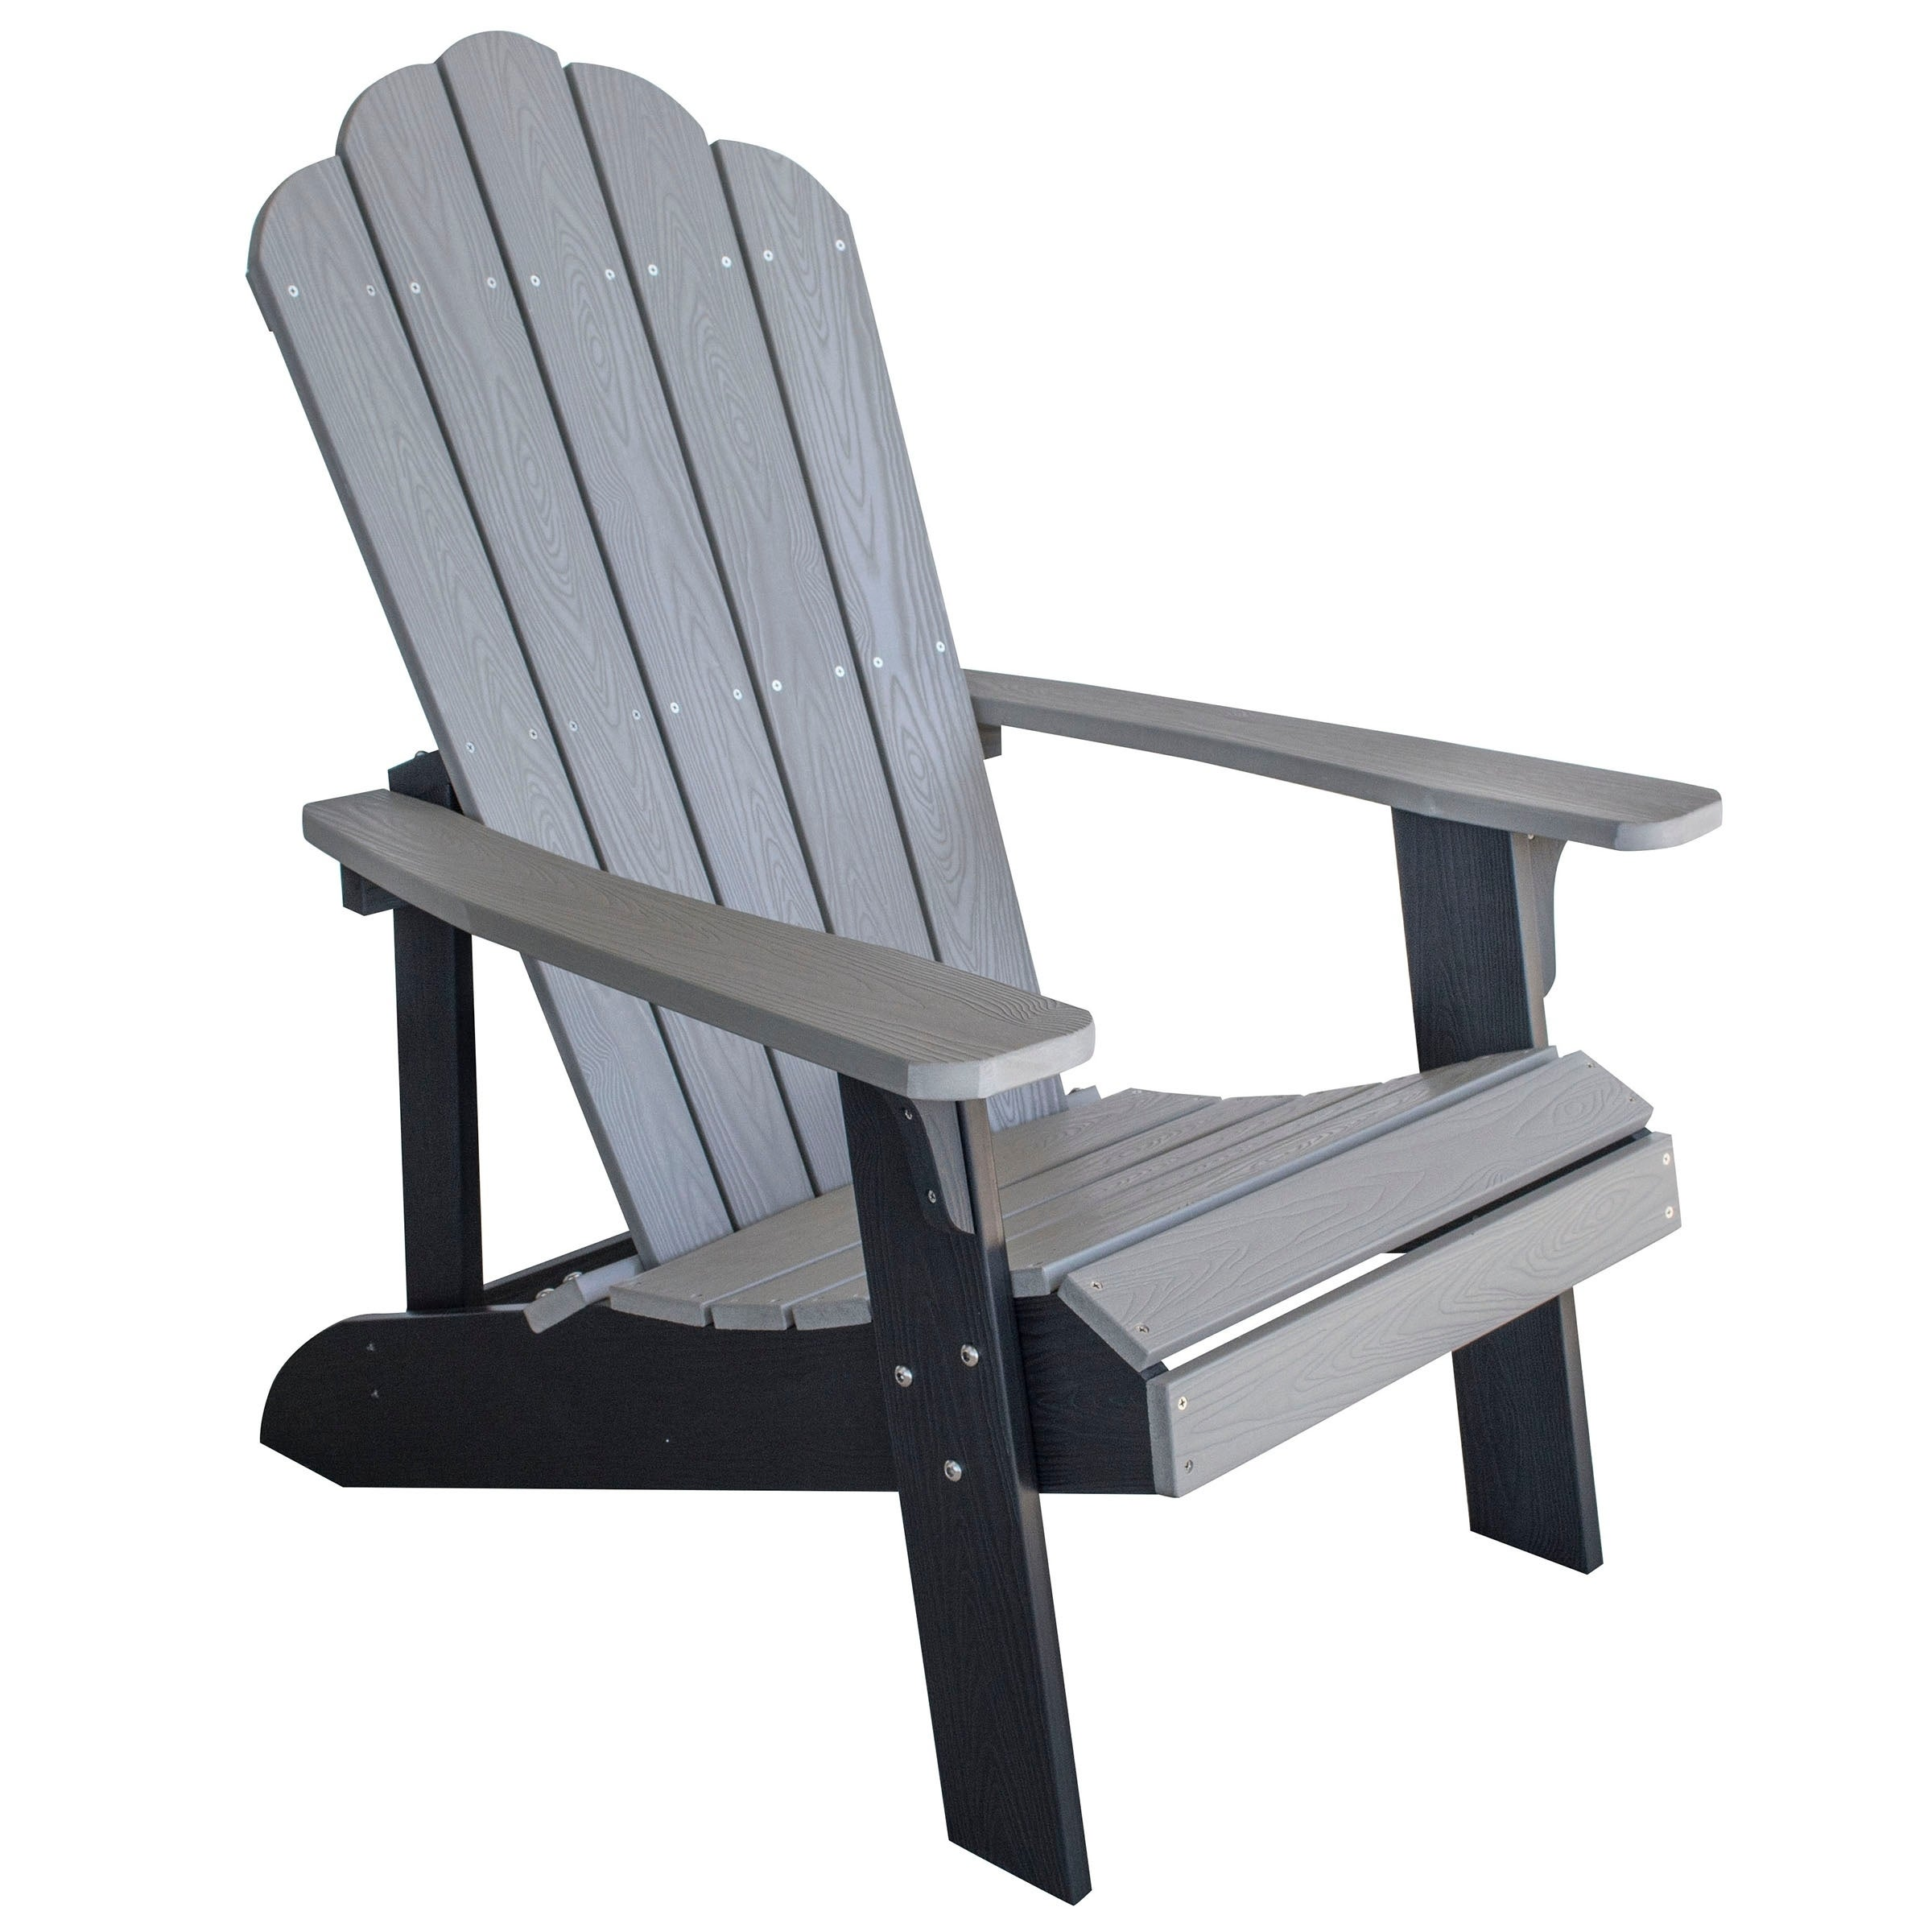 Outstanding Adirondack Chair W Simulated Wood Construction Gray W Black Gamerscity Chair Design For Home Gamerscityorg